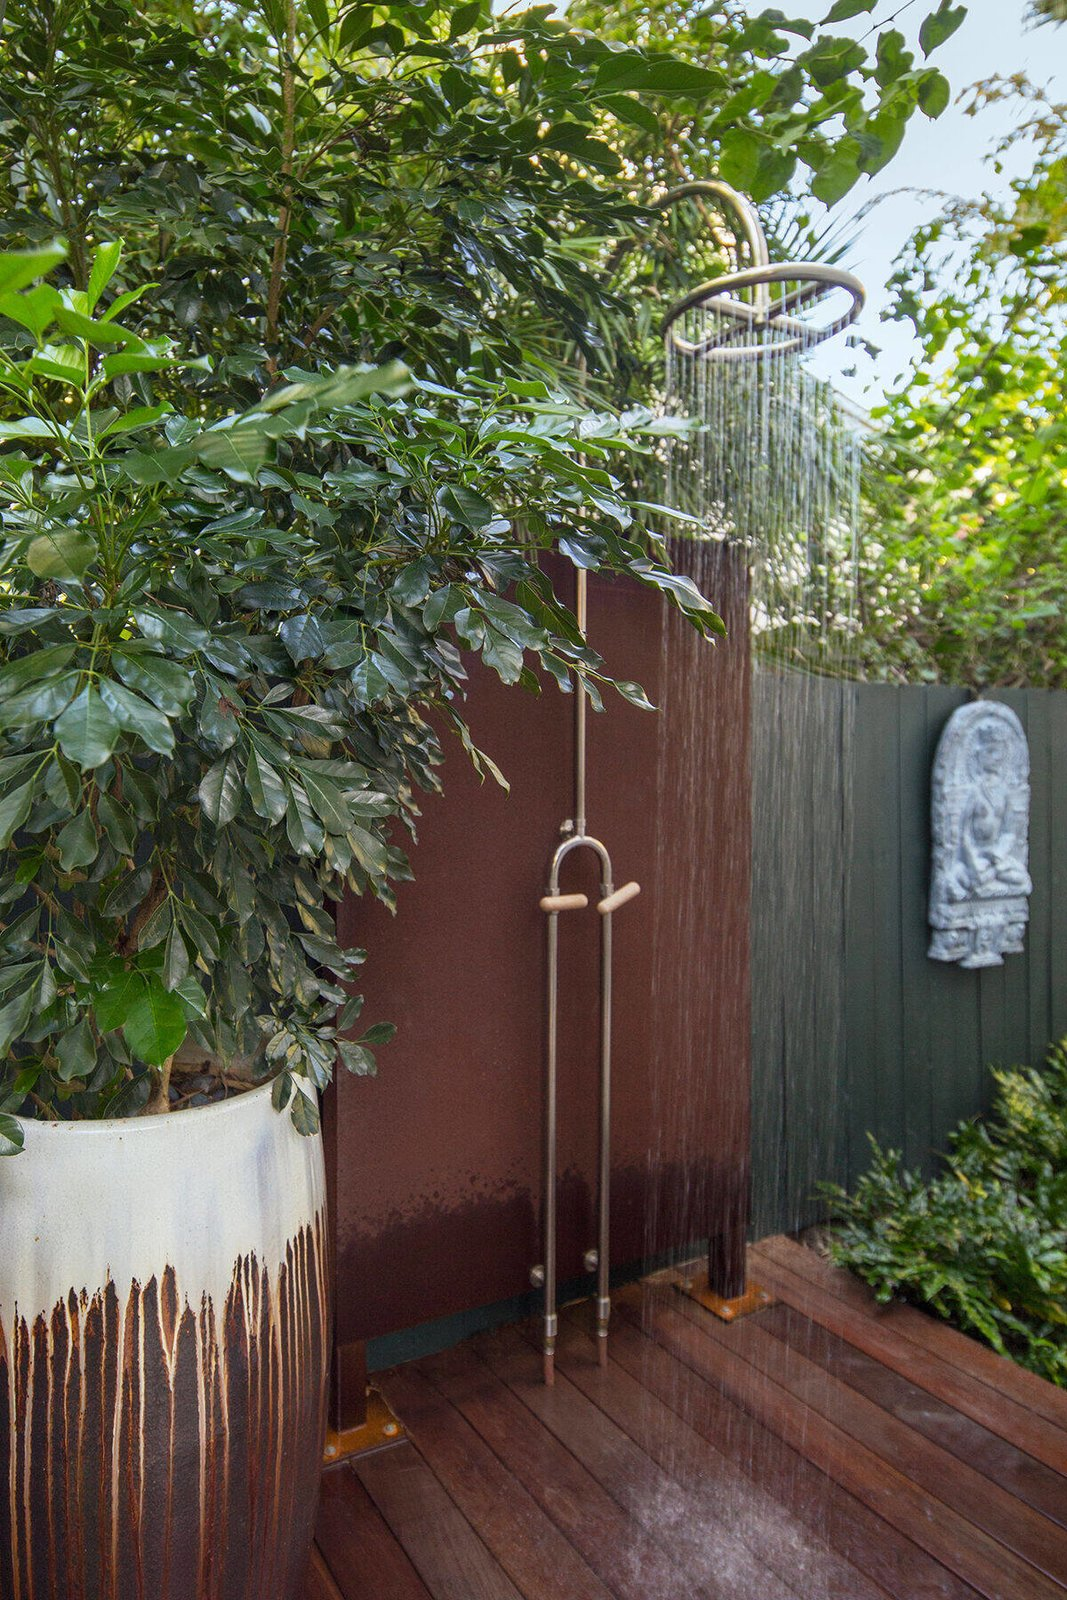 Outdoor, Garden, Side Yard, Gardens, Walkways, Hardscapes, Wood Patio, Porch, Deck, Shrubs, Decking Patio, Porch, Deck, and Landscape Lighting An outdoor shower was placed near the pool but tucked away to allow some privacy for those using it.  Von Phister by Craig Reynolds Landscape Architecture